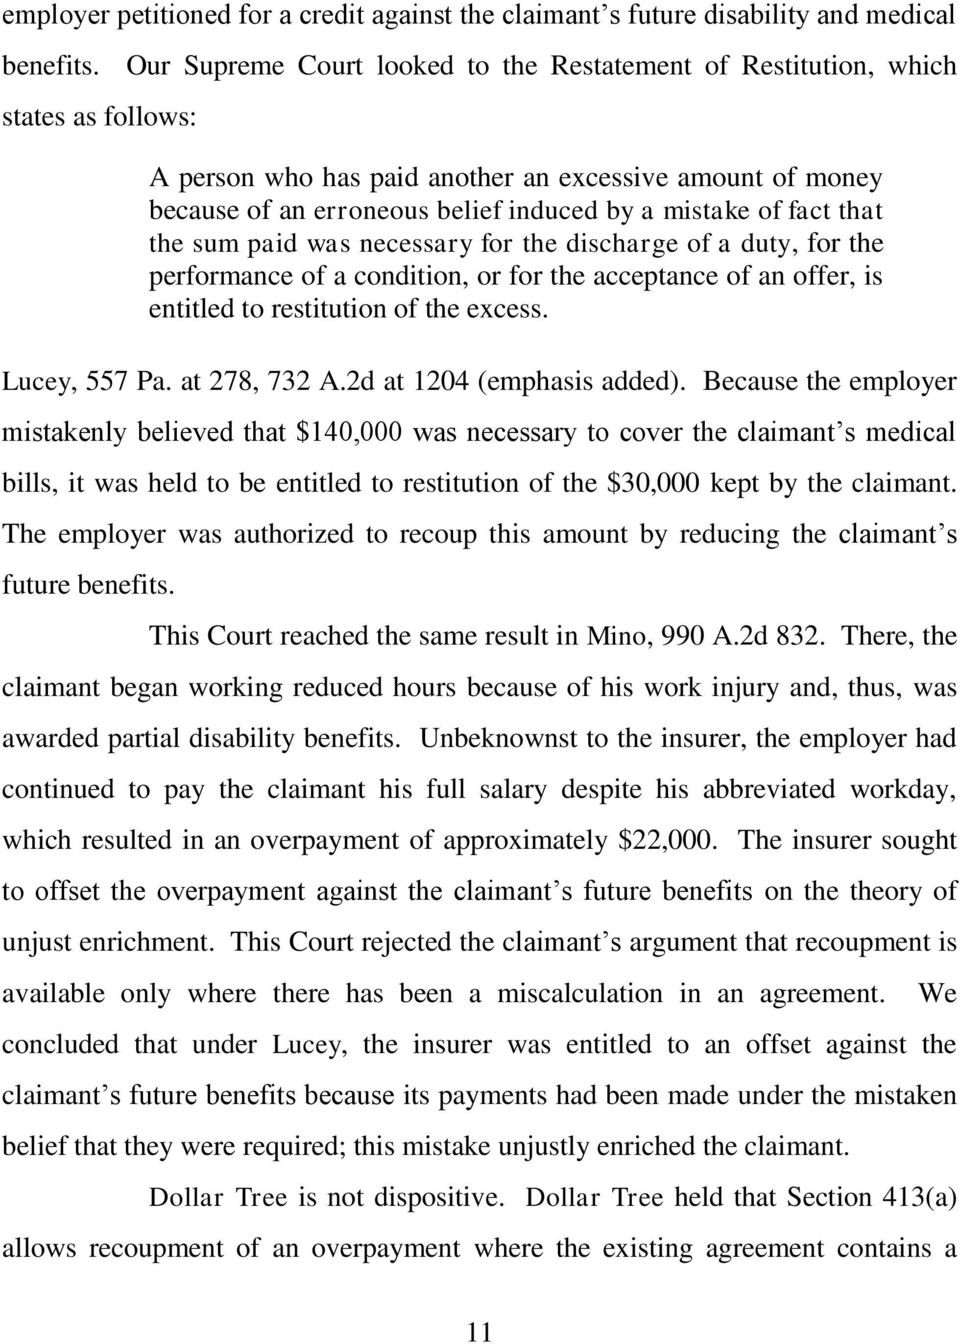 fact that the sum paid was necessary for the discharge of a duty, for the performance of a condition, or for the acceptance of an offer, is entitled to restitution of the excess. Lucey, 557 Pa.